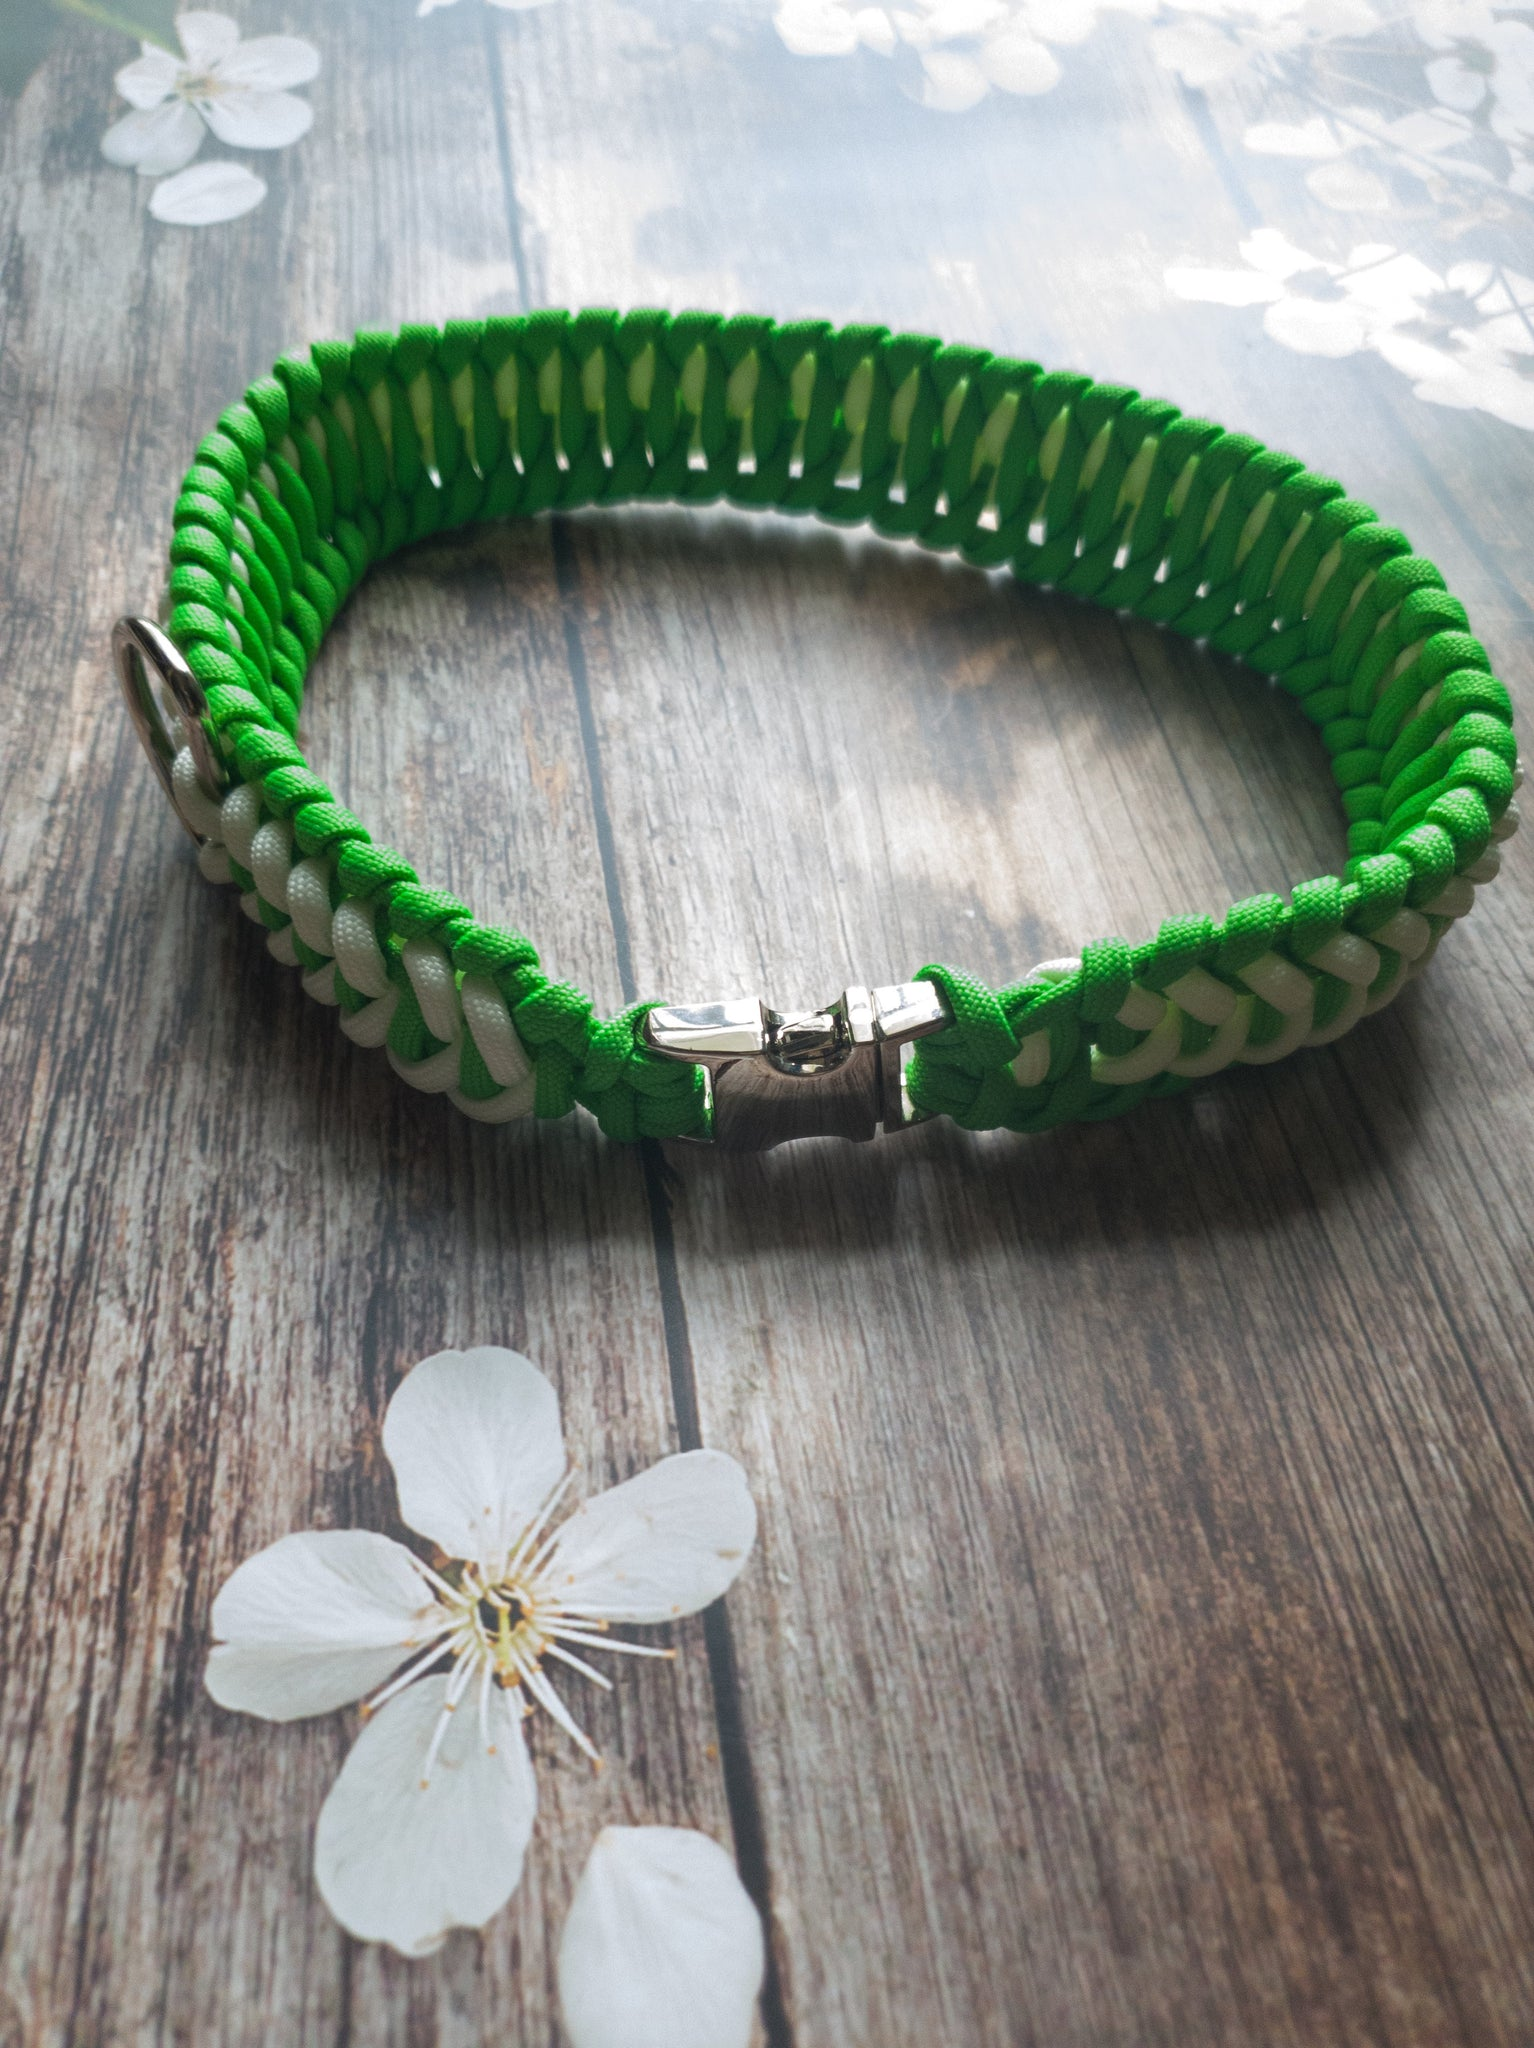 Trilobite Dog Collar Lime Green & White